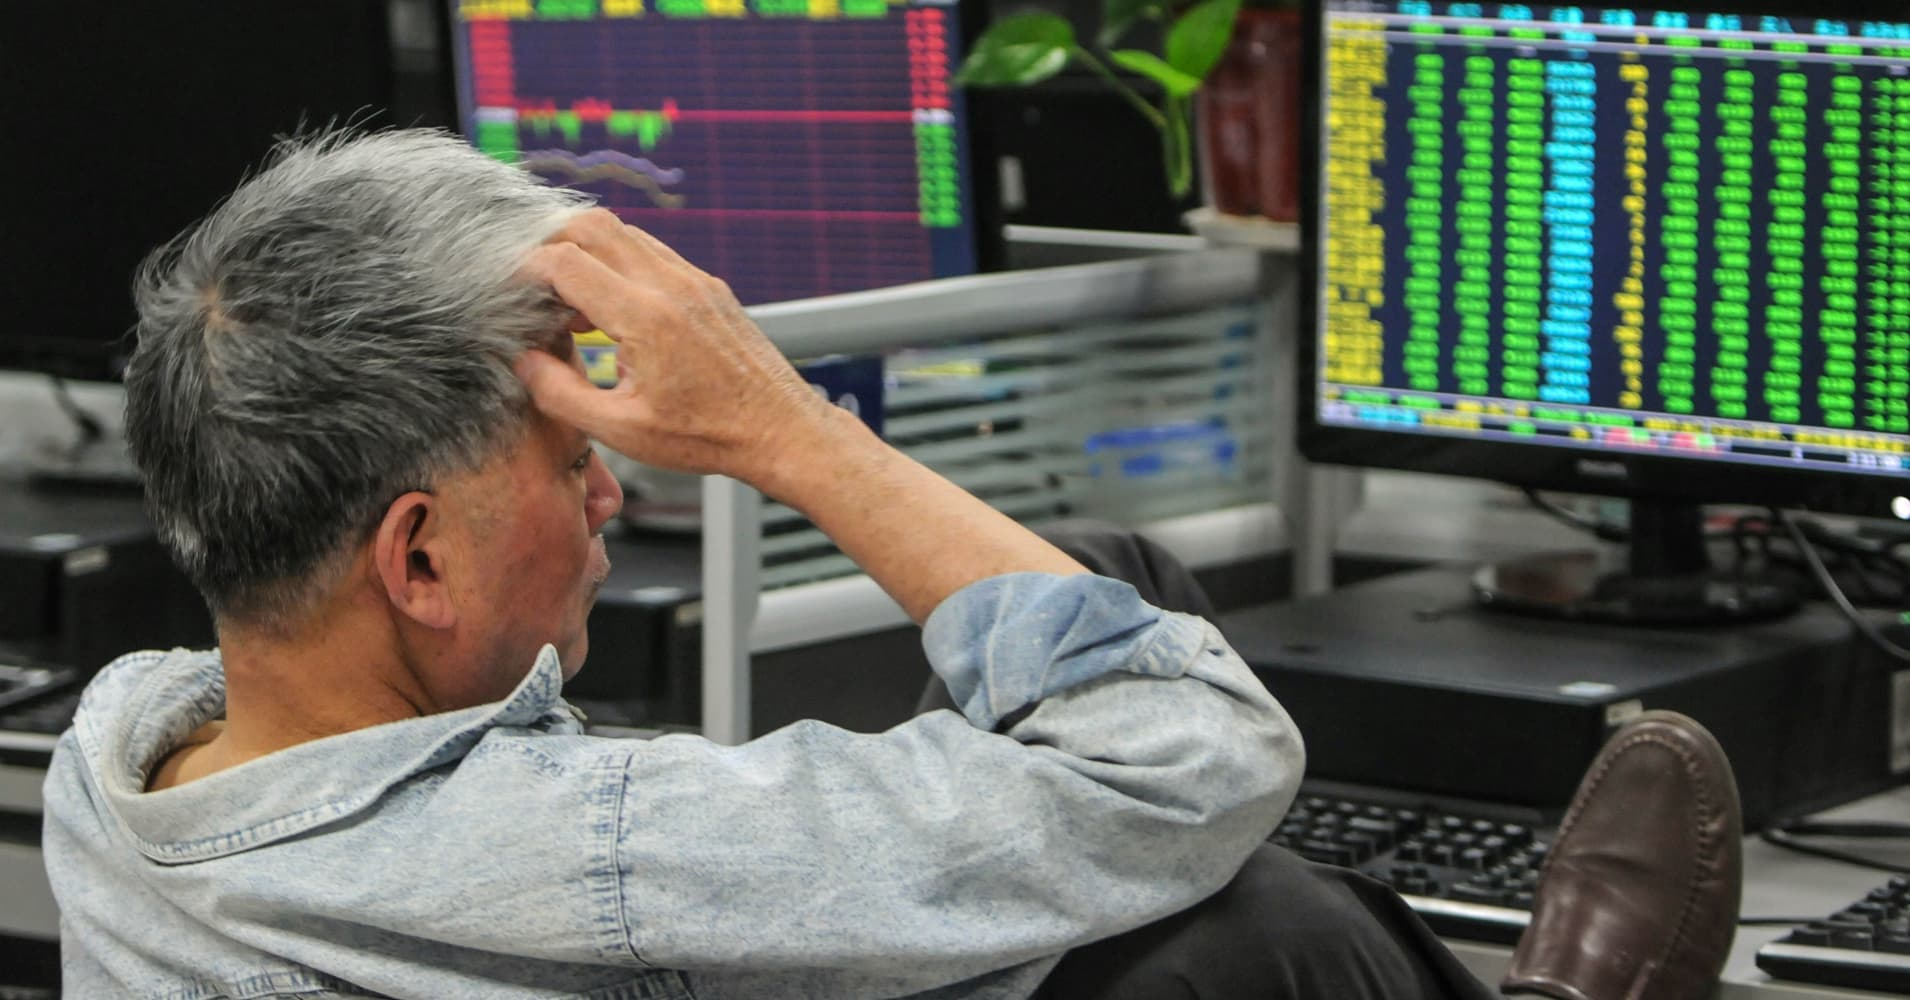 Shanghai stocks plummet more than 4 percent: 'China's trade recession has started to emerge'